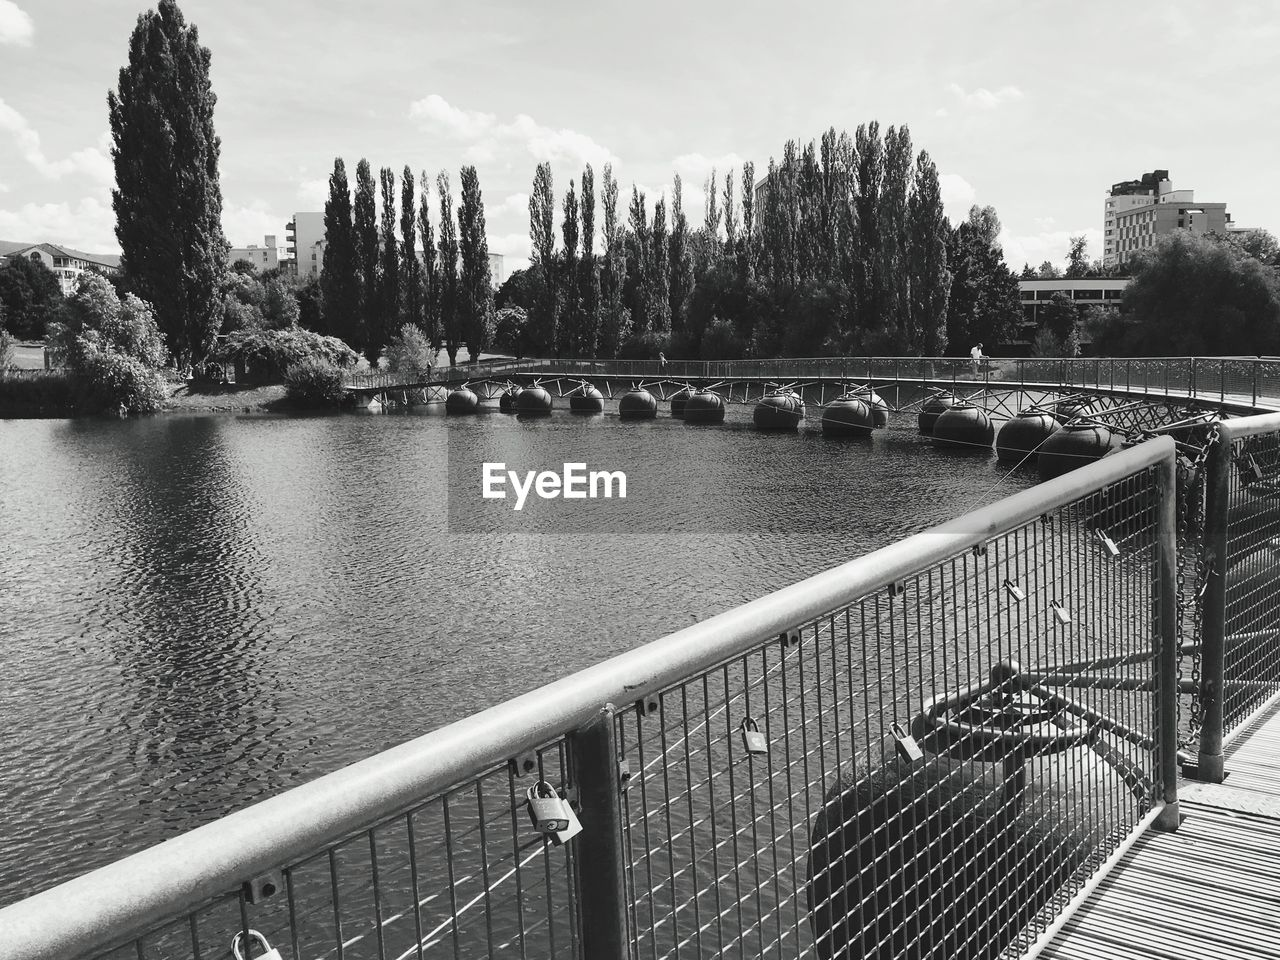 water, architecture, sky, tree, railing, nature, built structure, metal, day, river, no people, bridge, building exterior, plant, outdoors, barrier, bridge - man made structure, connection, balustrade